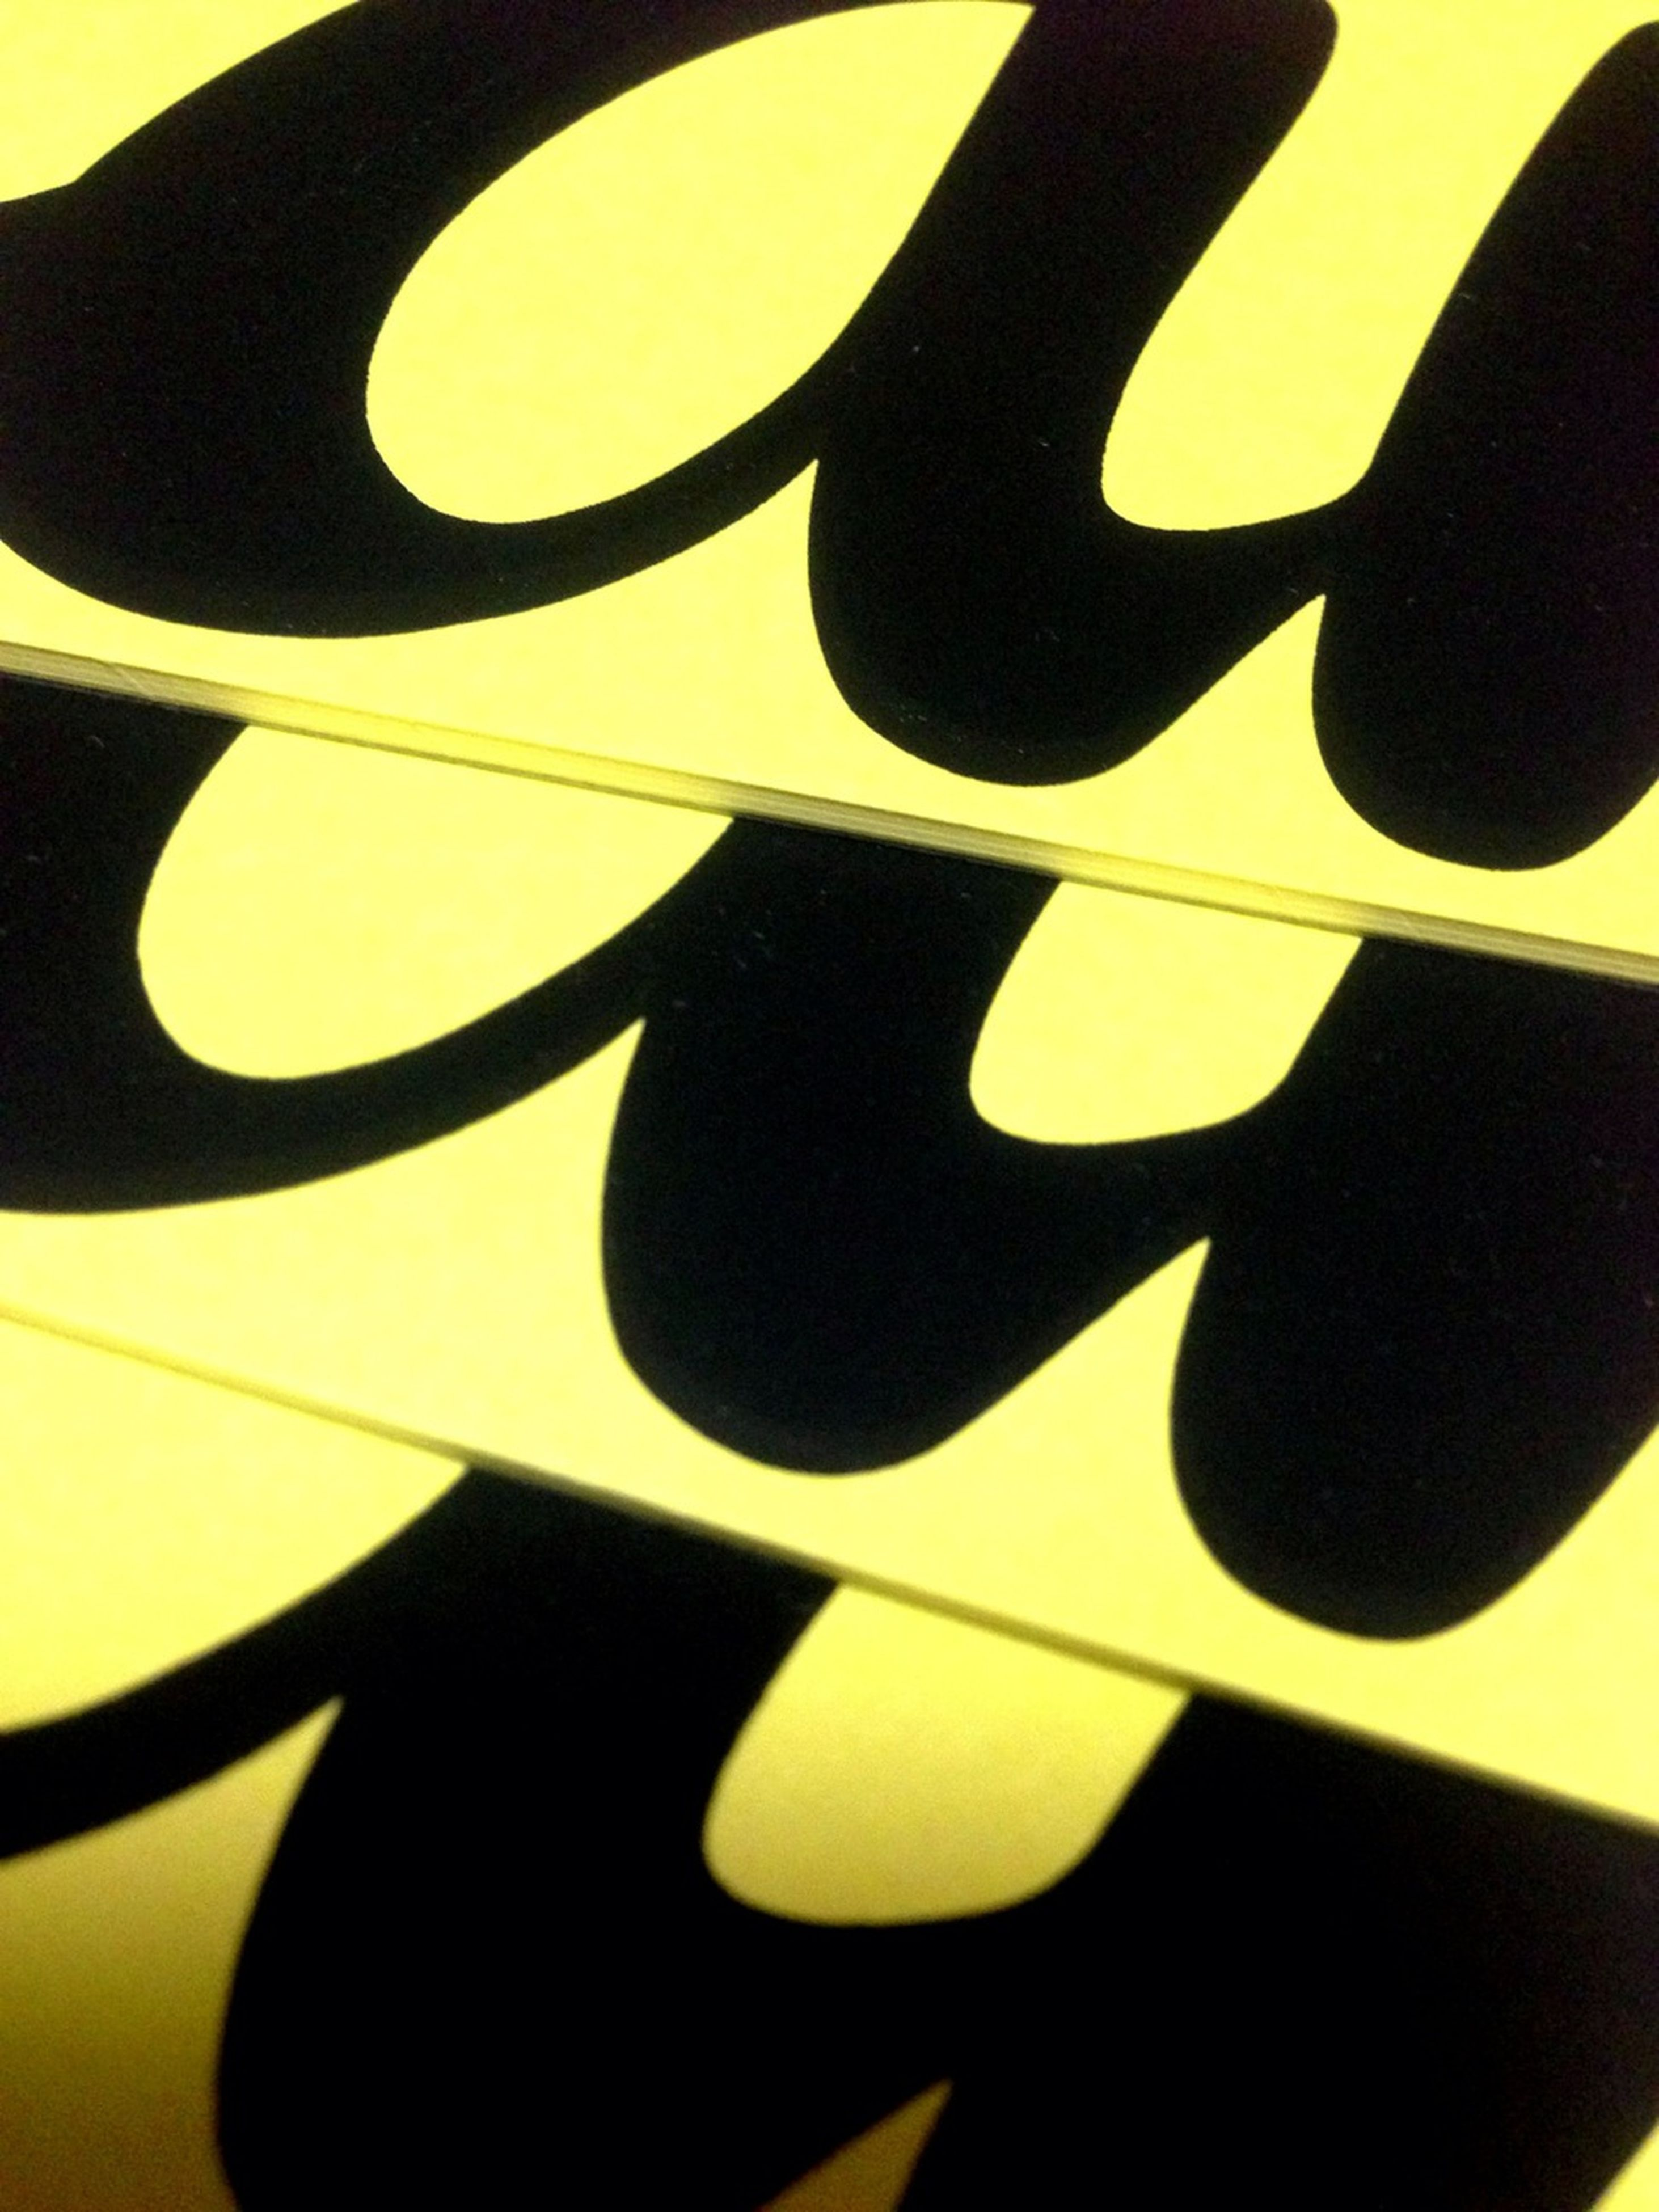 indoors, creativity, art and craft, art, yellow, close-up, design, still life, pattern, shape, wall - building feature, shadow, no people, decoration, black color, craft, hanging, detail, sunlight, human representation